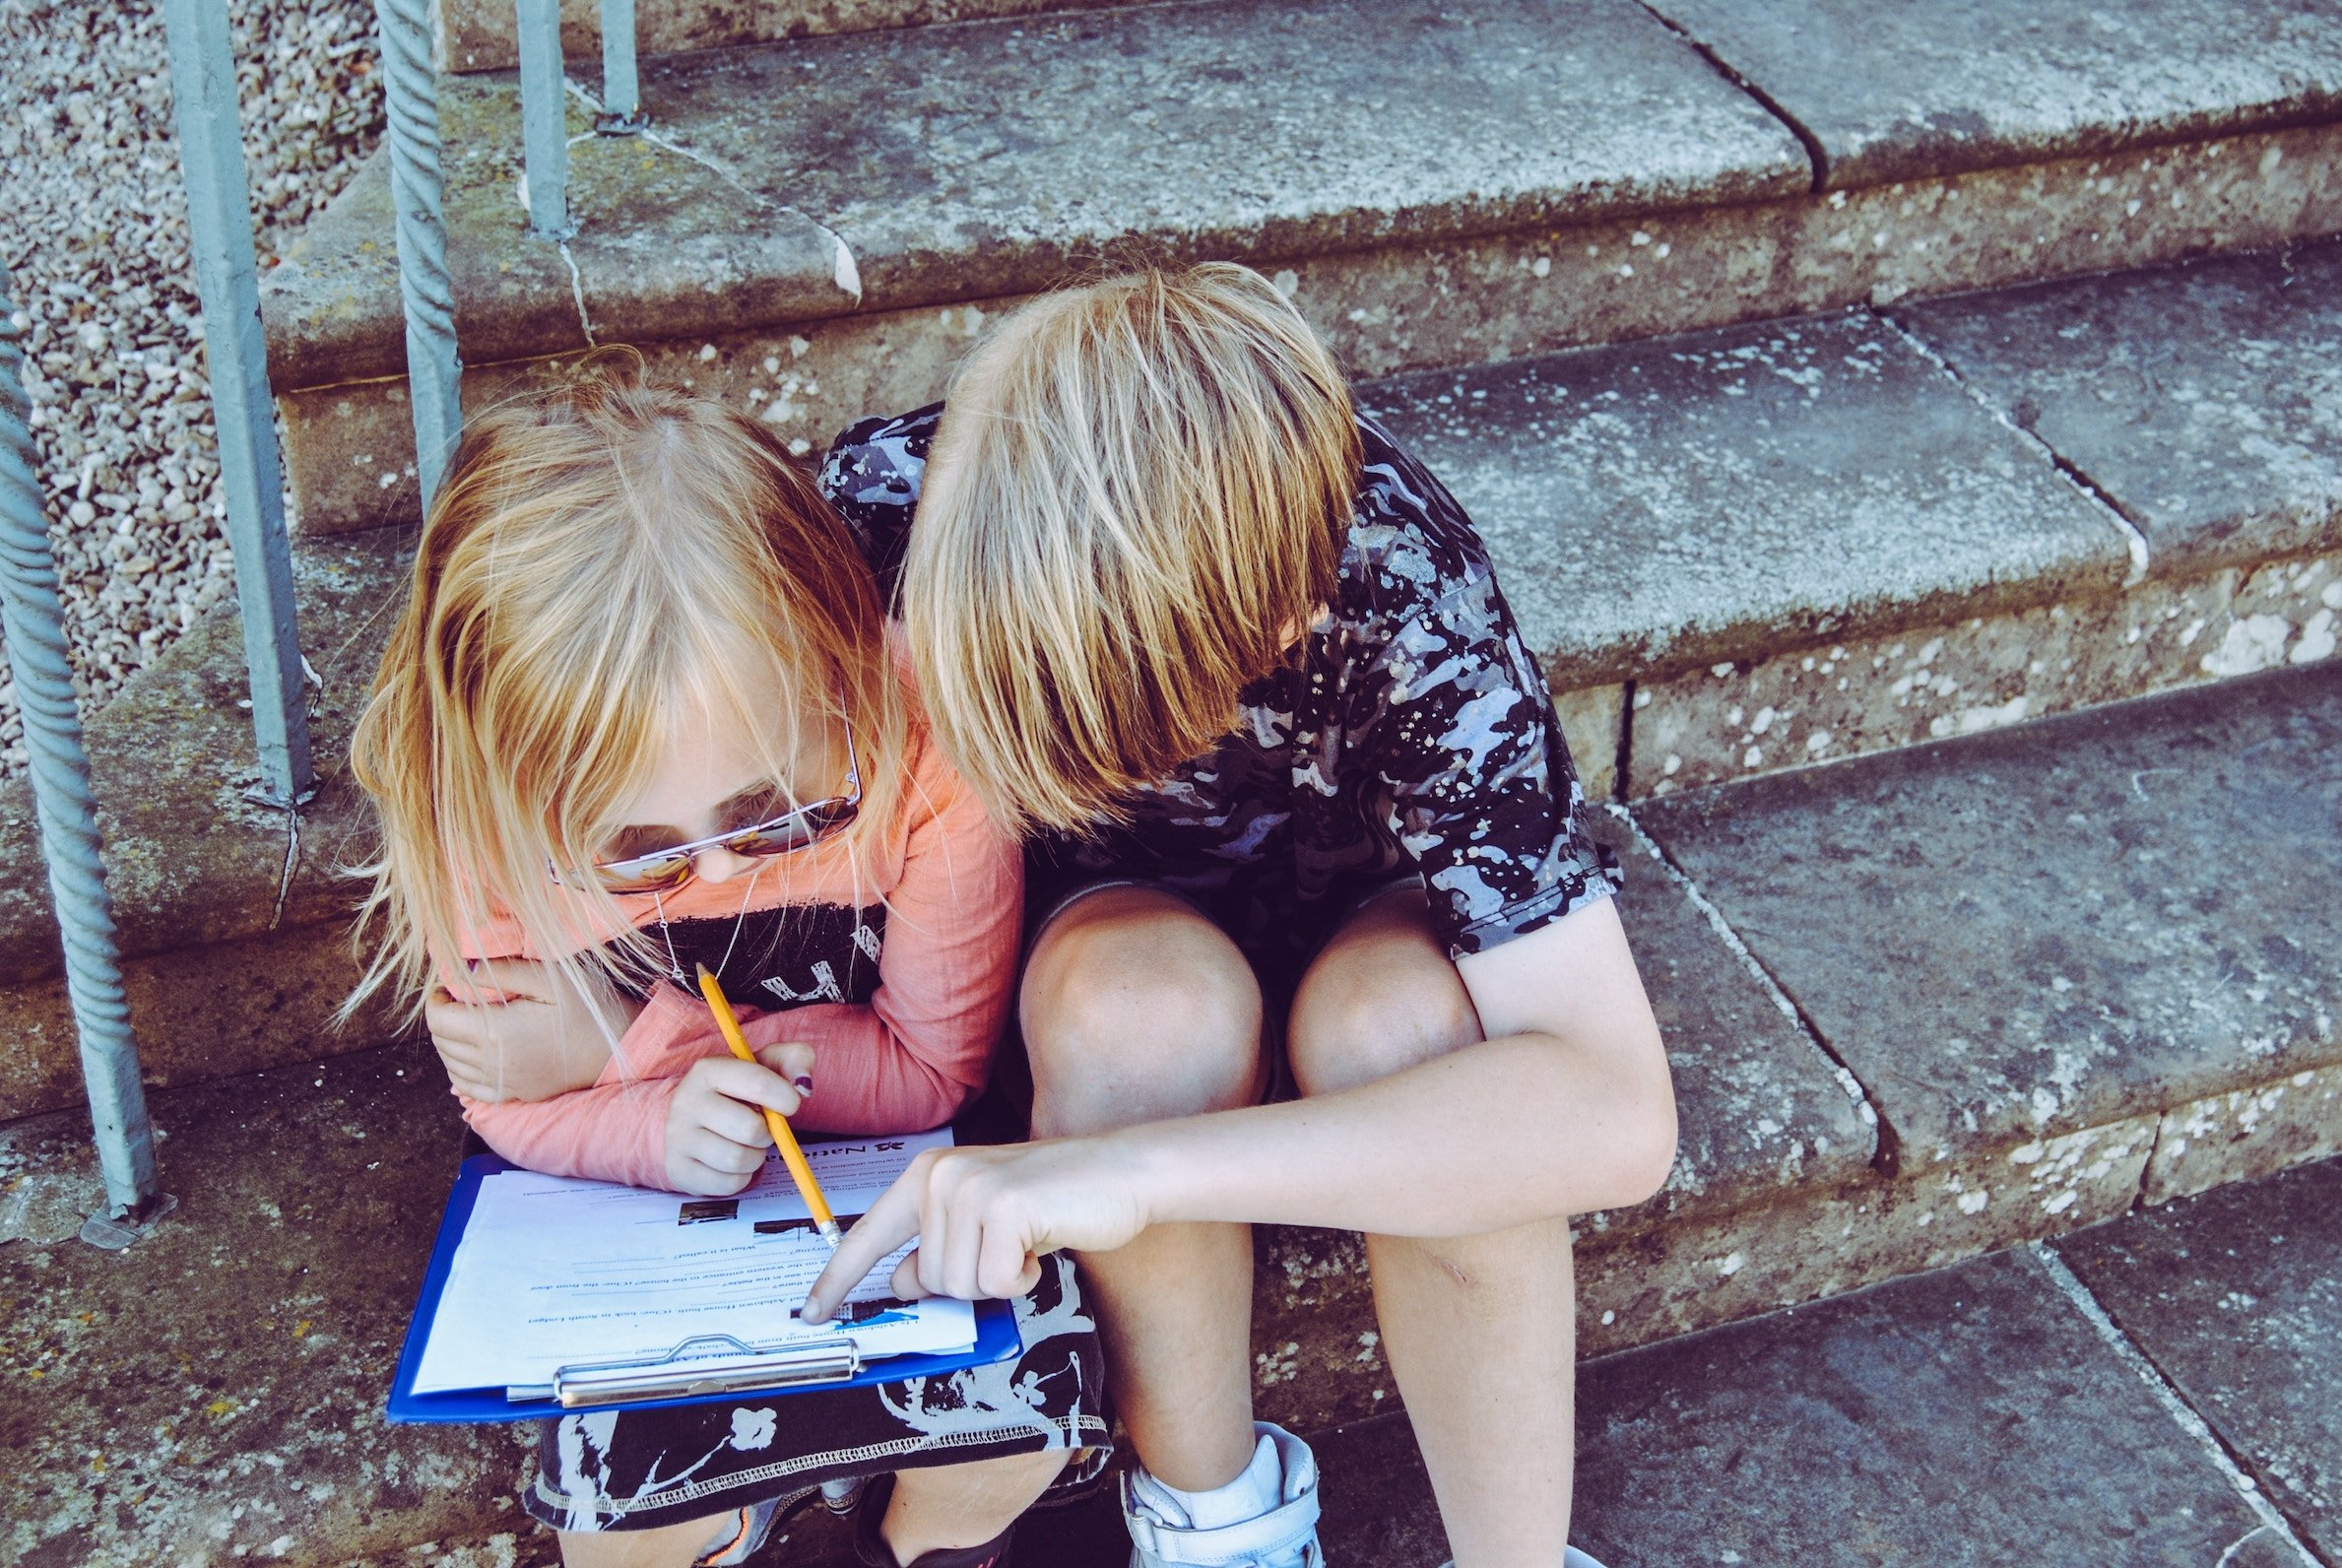 Two children work on a document together